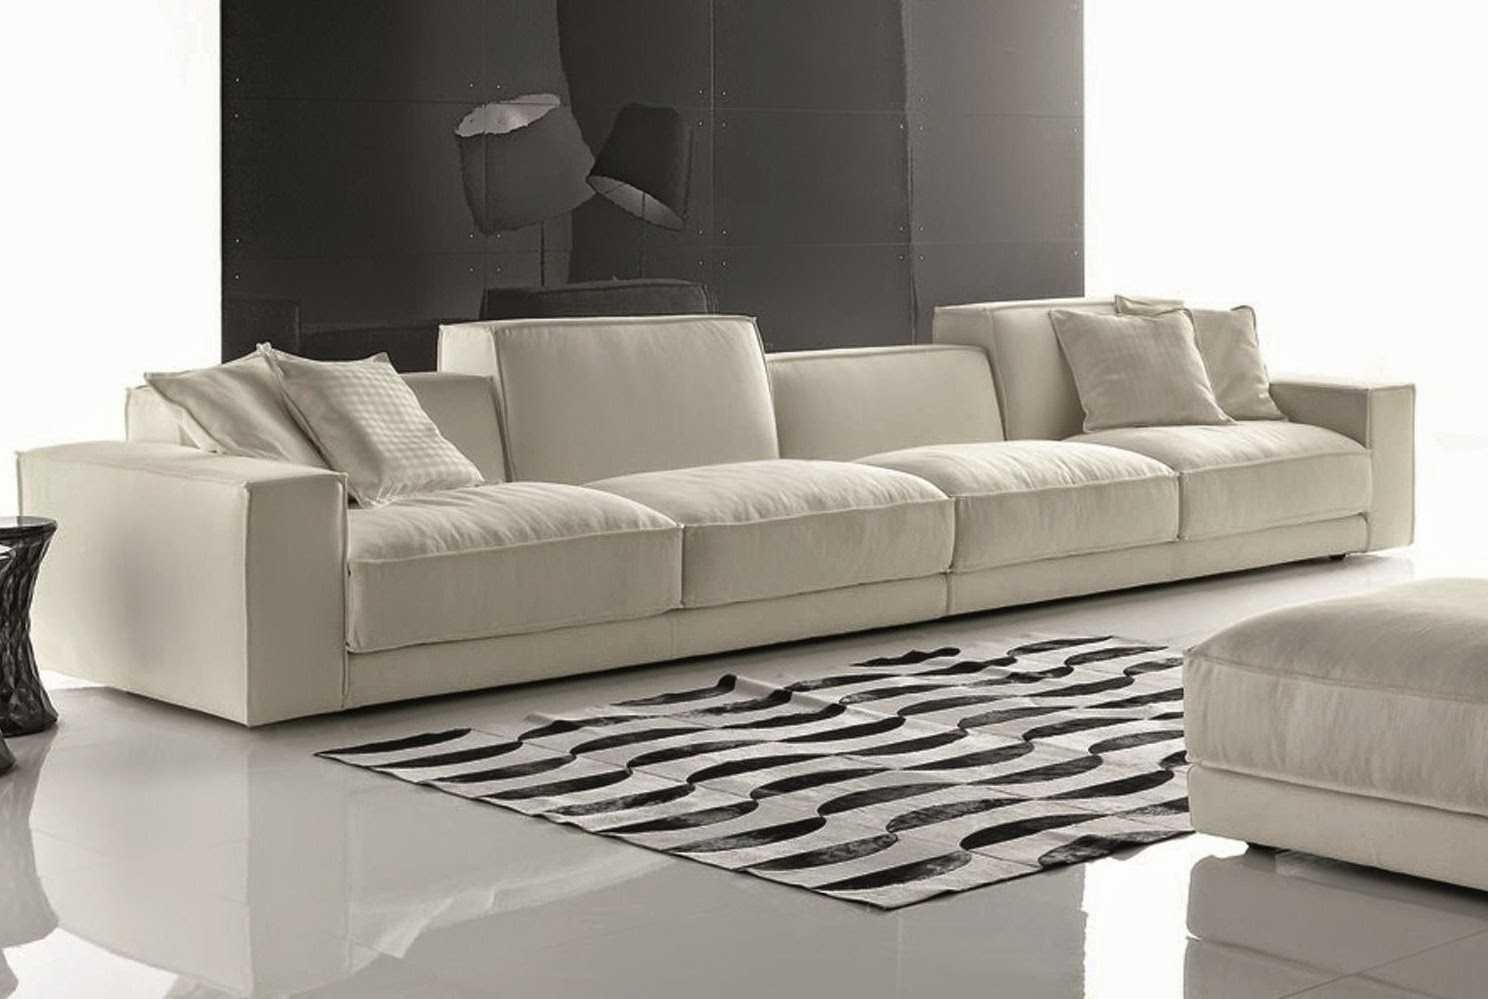 Arq salvatore ruvolo decoraci n con muebles italianos for Muebles italianos marcas